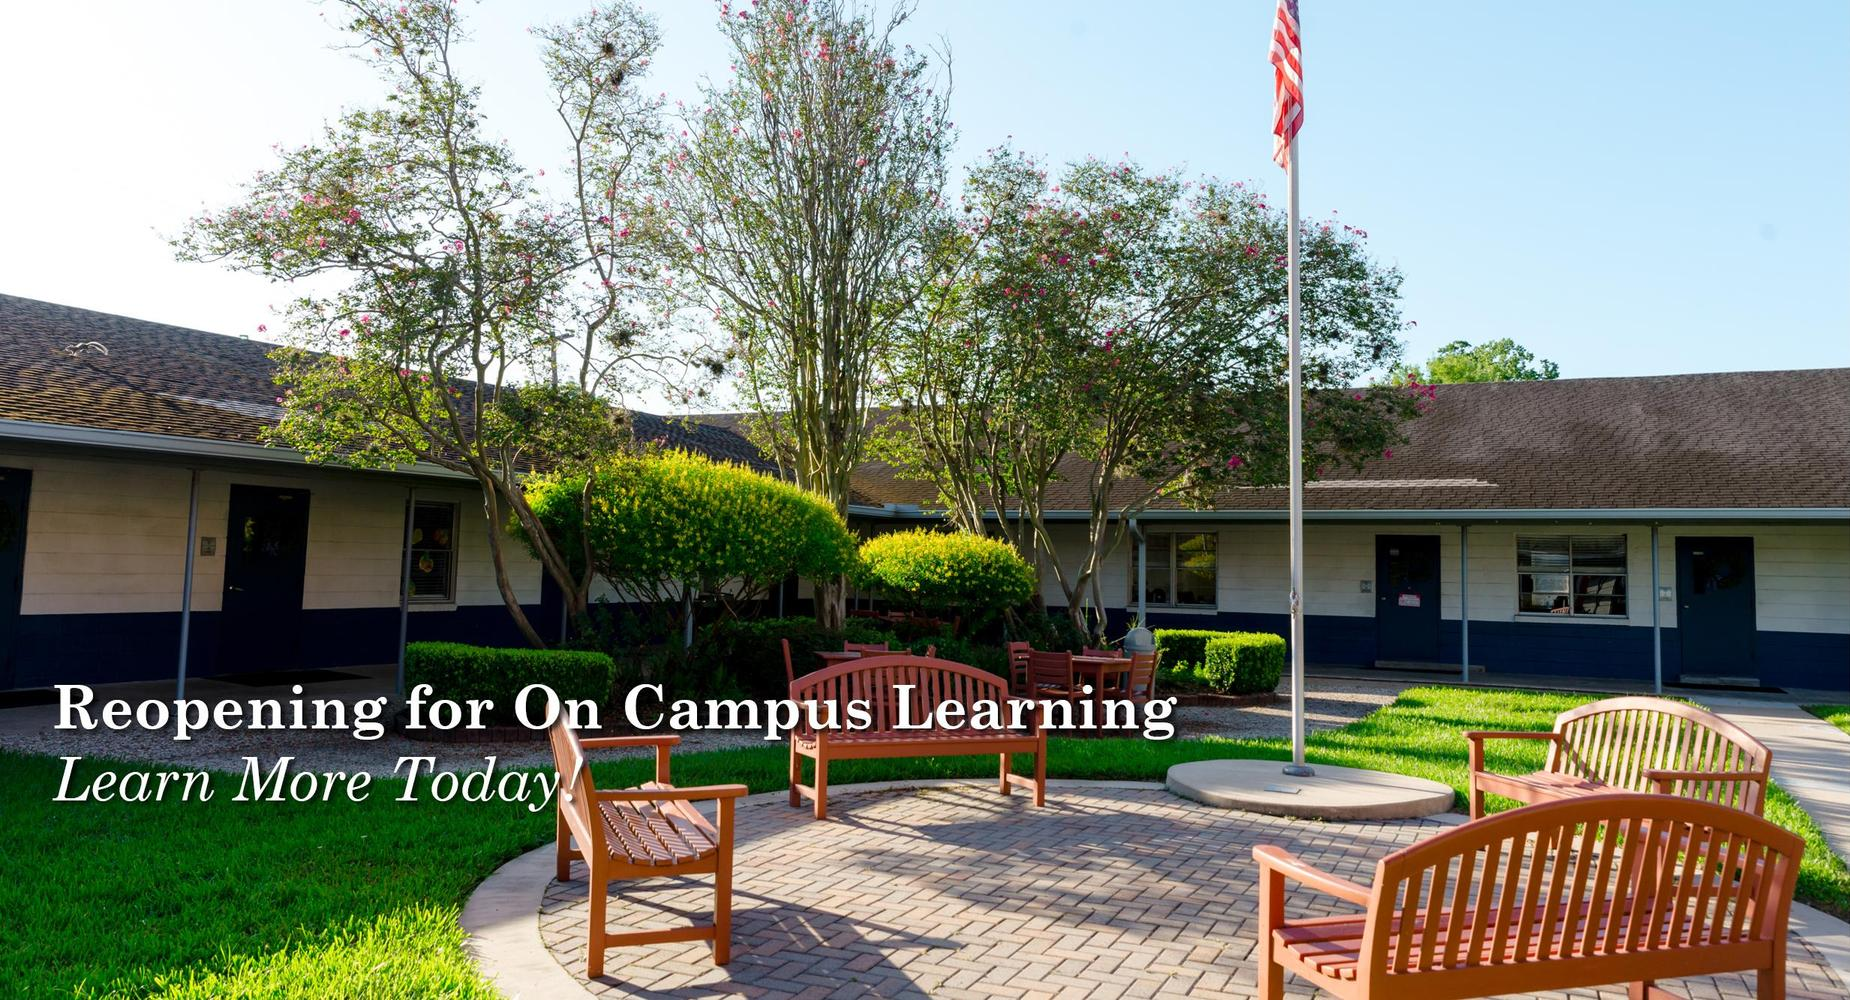 Reopening for On Campus Learning - Learn more today